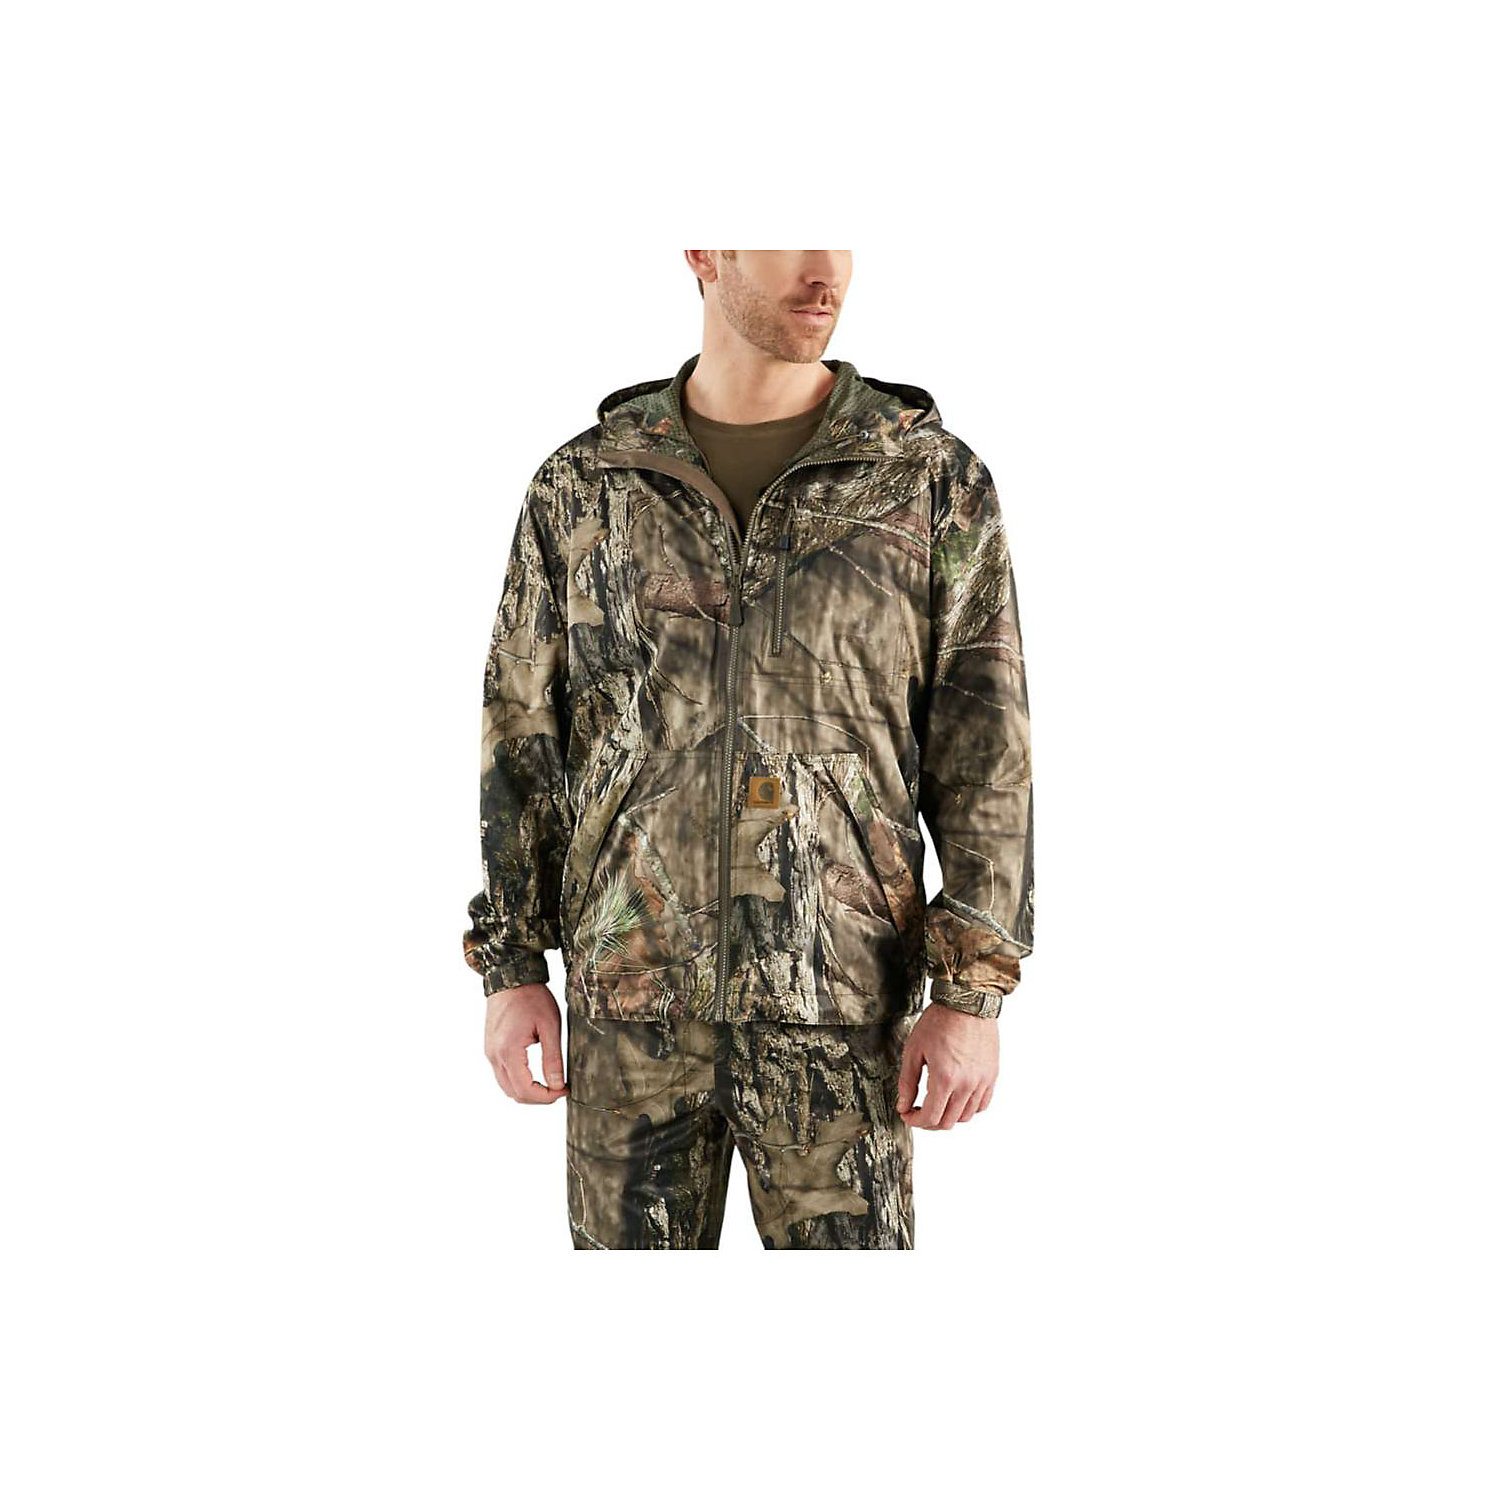 d50e694833240 Carhartt Men's Stormy Woods Jacket. Double tap to zoom